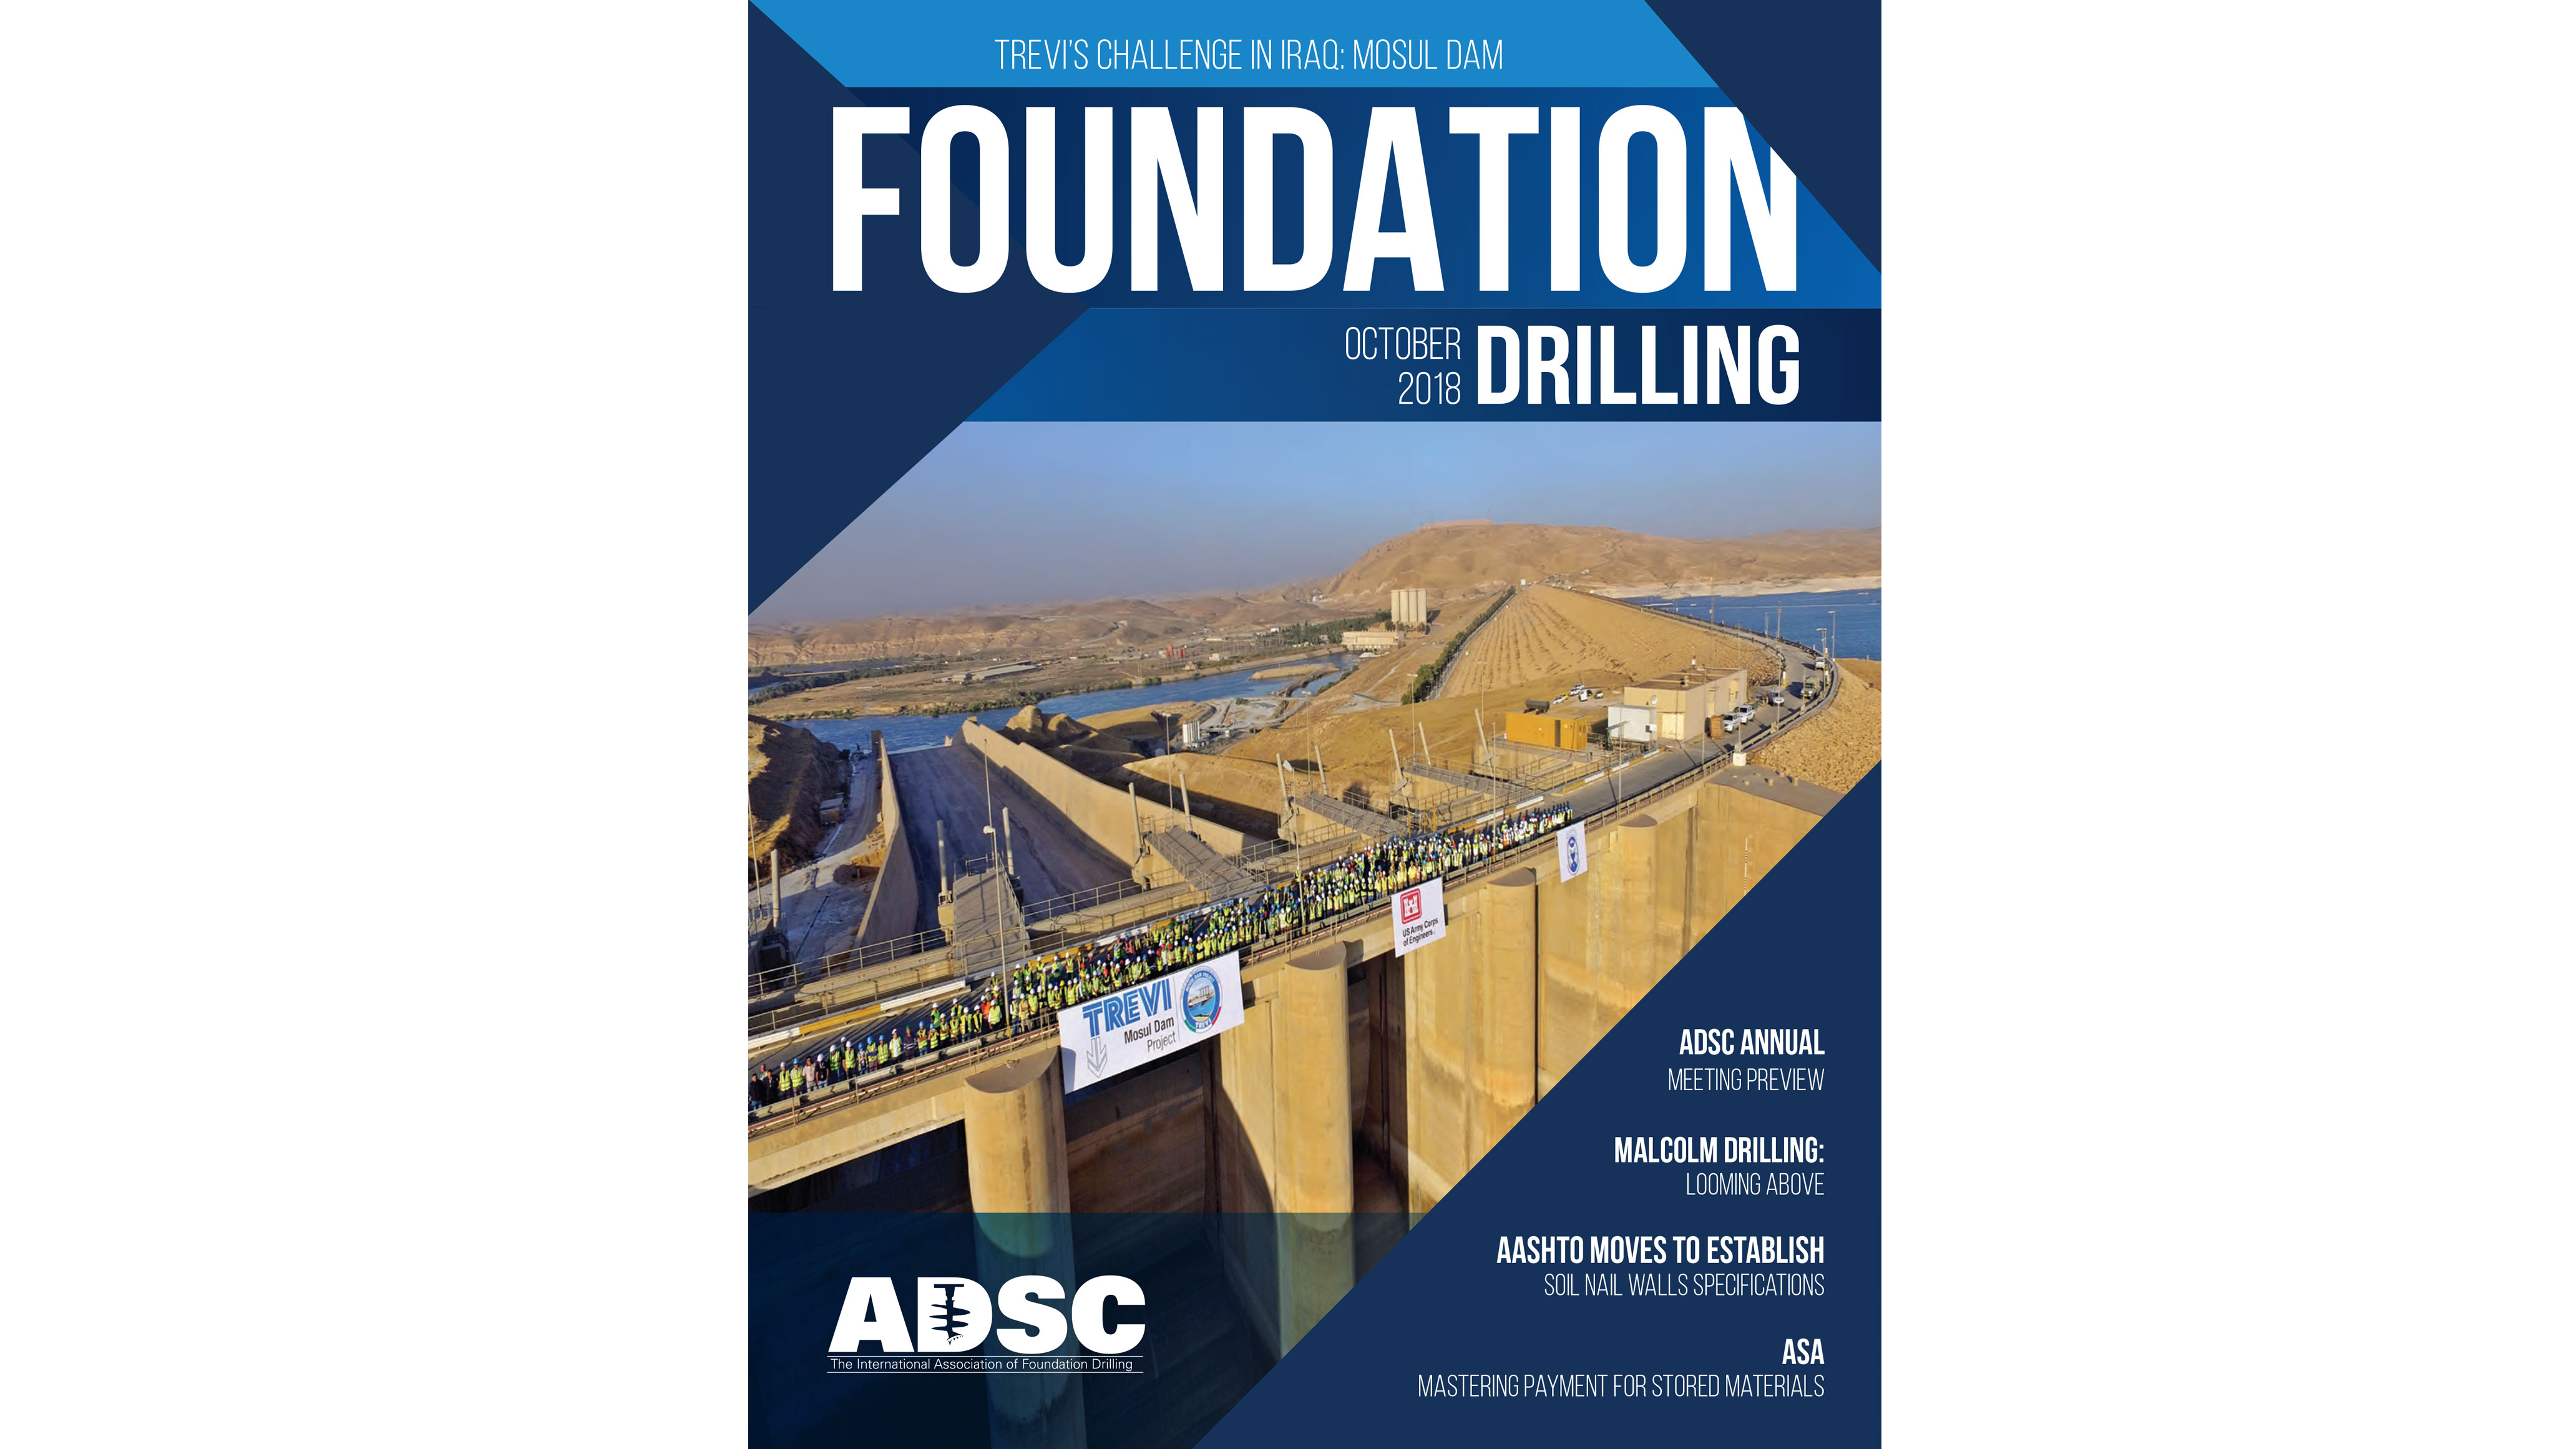 The Mosul jobsite on the cover of ADSC Foundation Drilling | Trevi 1